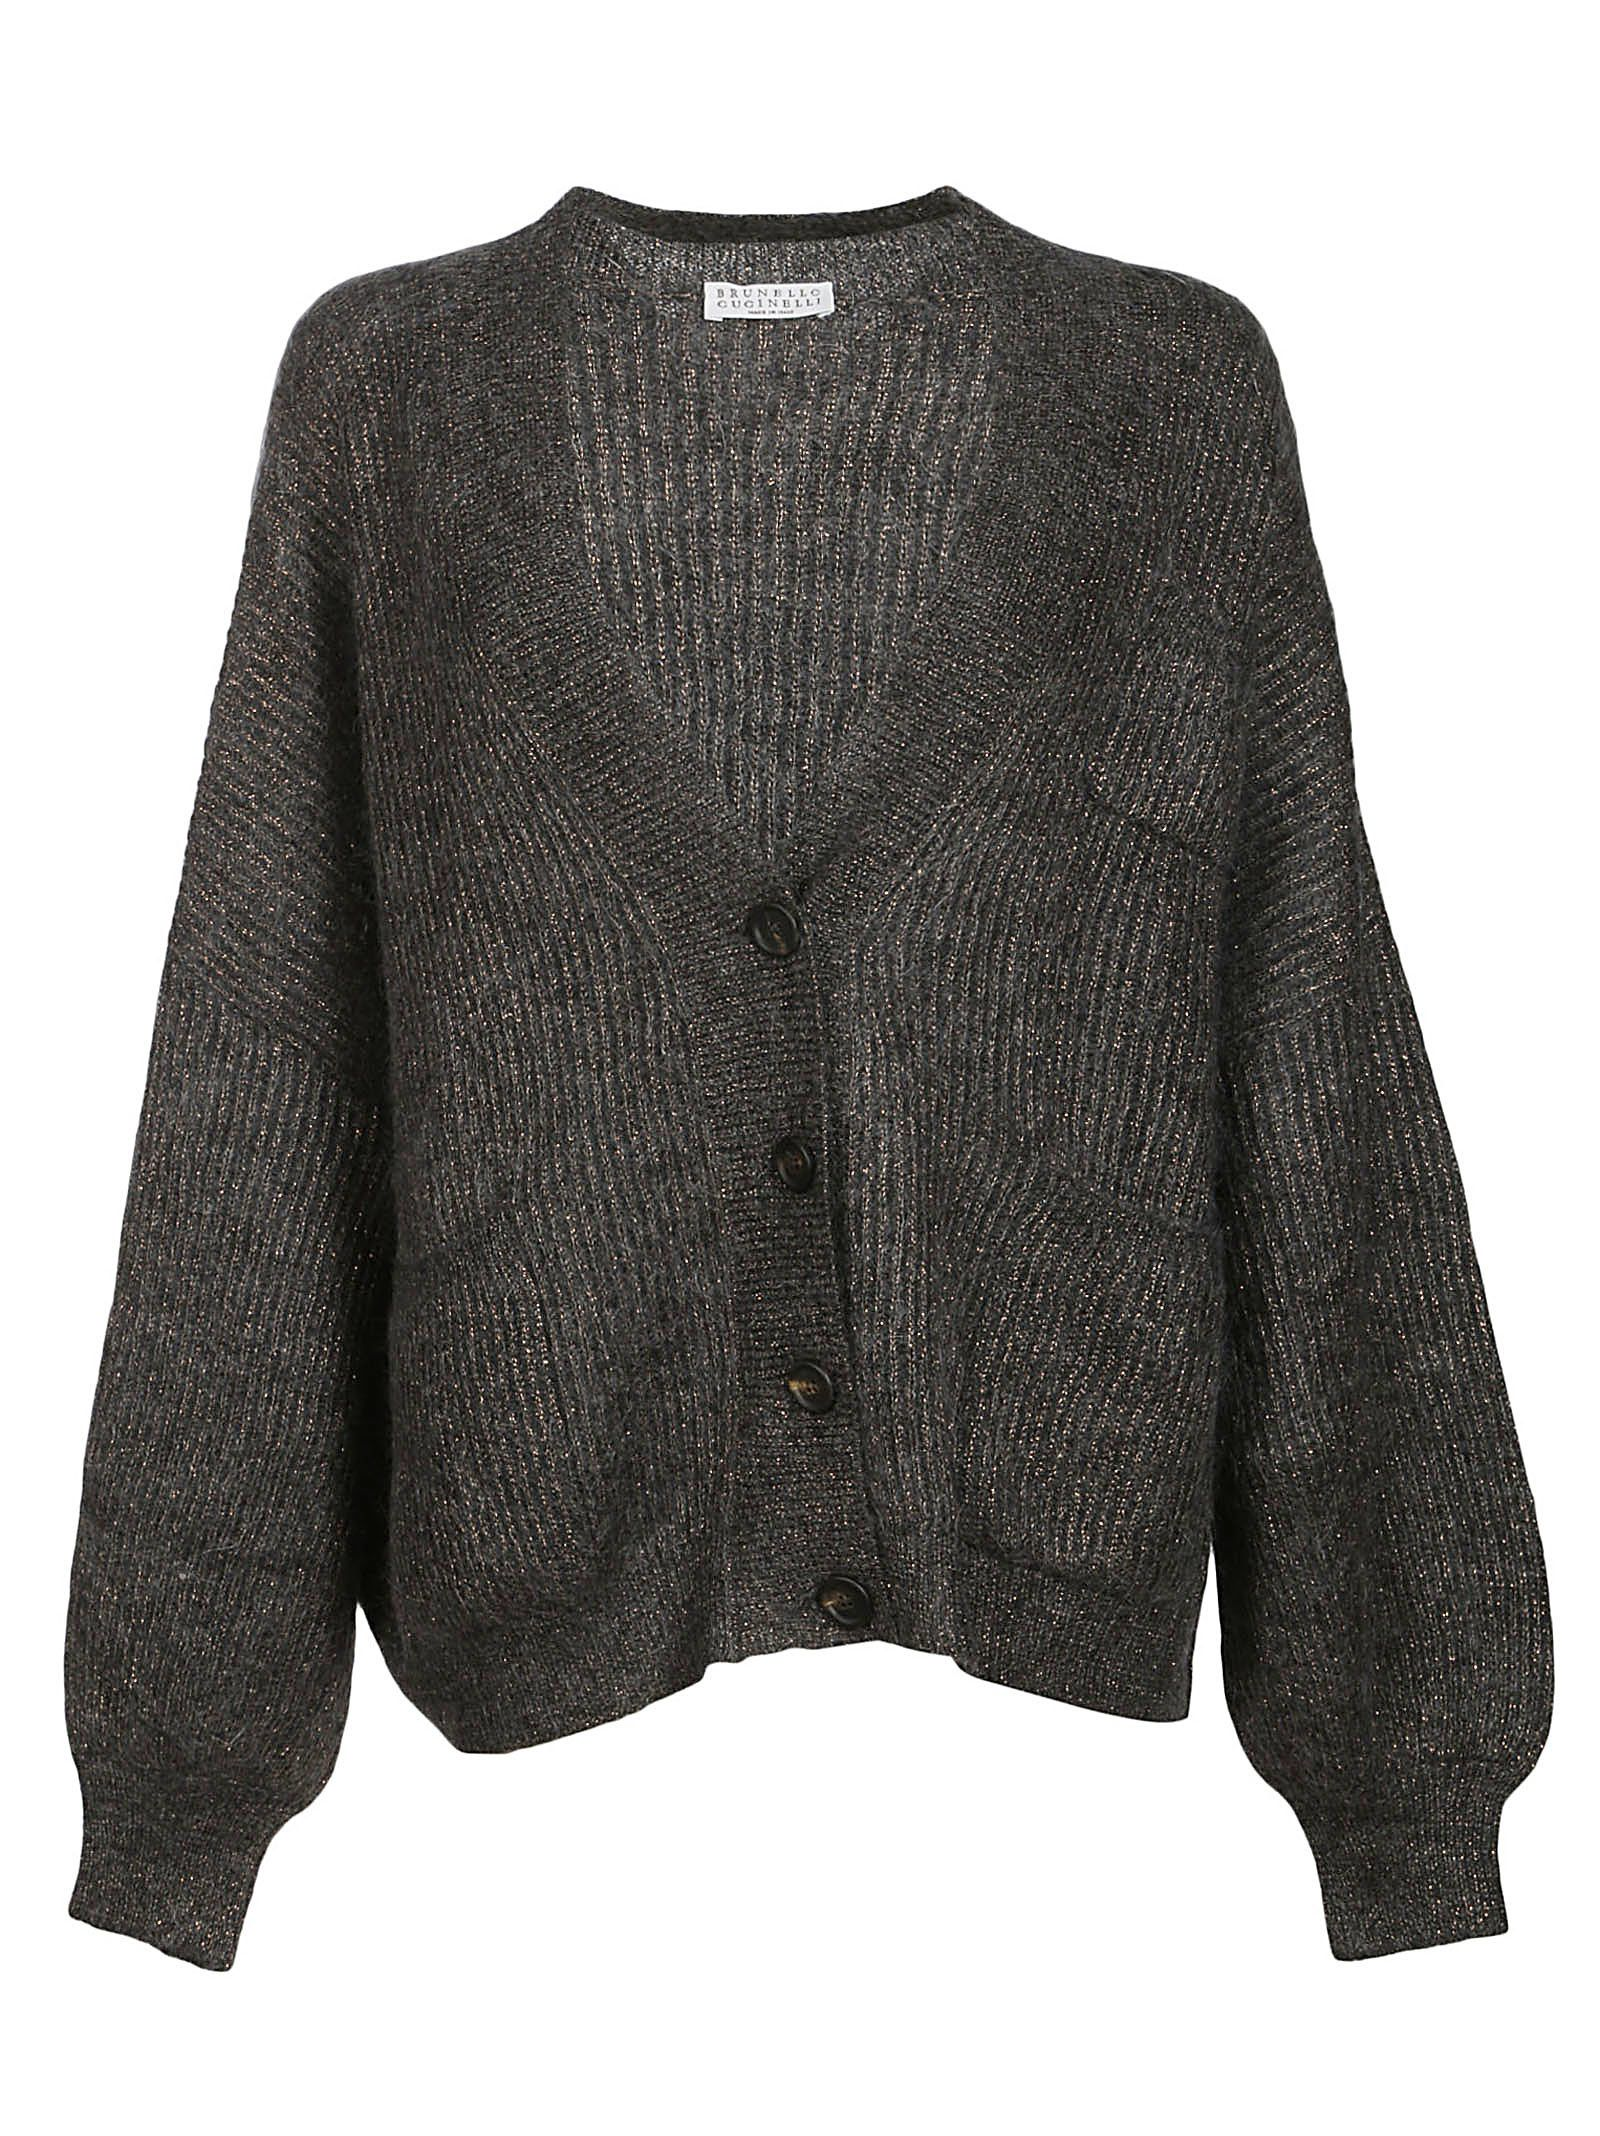 Brunello Cucinelli Lurex Button Cardigan